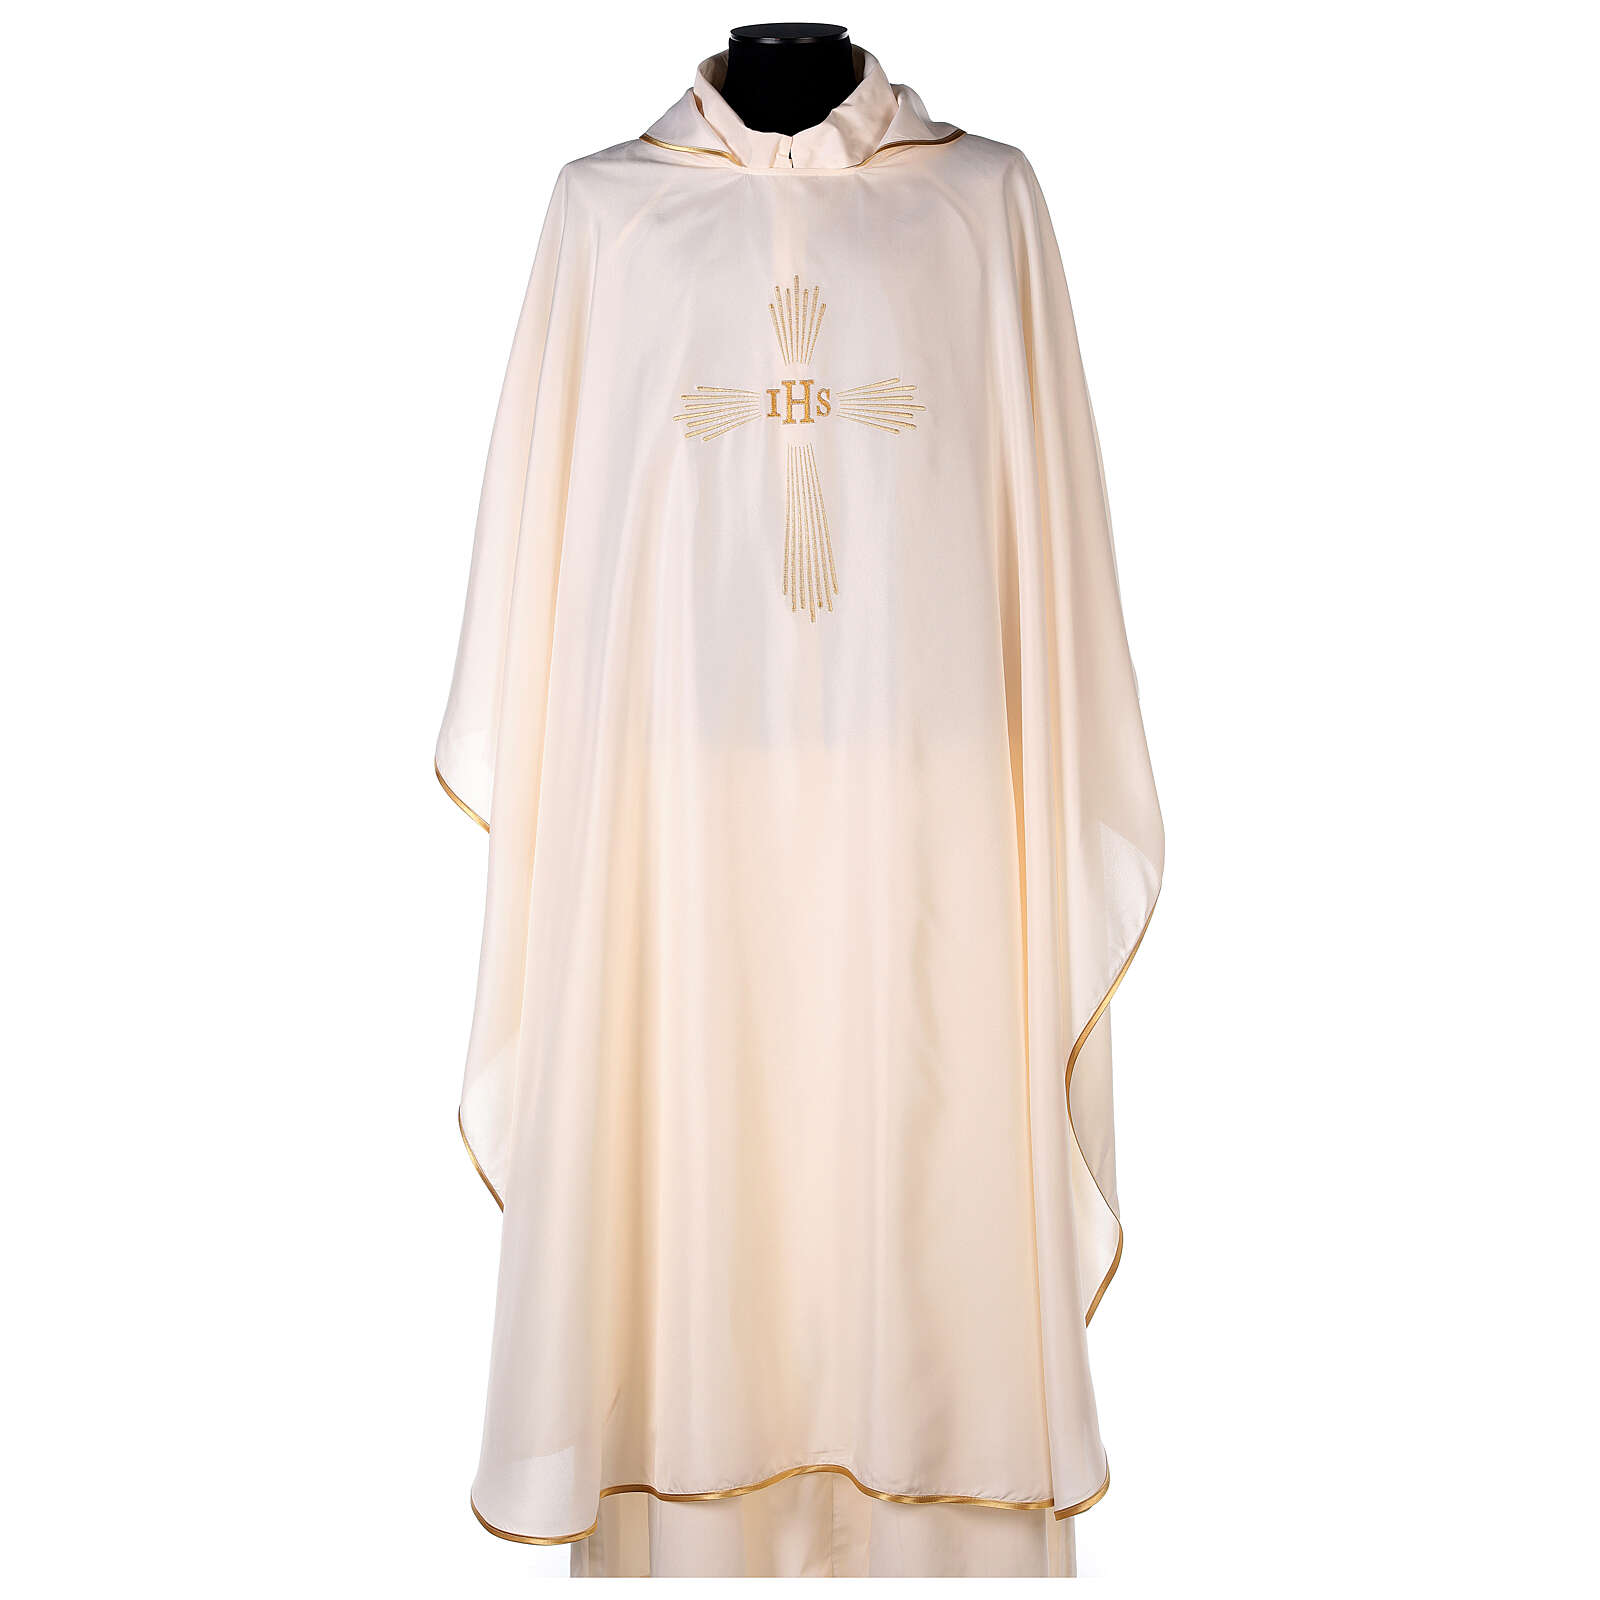 Ultralight Chasuble 100% polyester 4 colours IHS cross rays OFFER 4